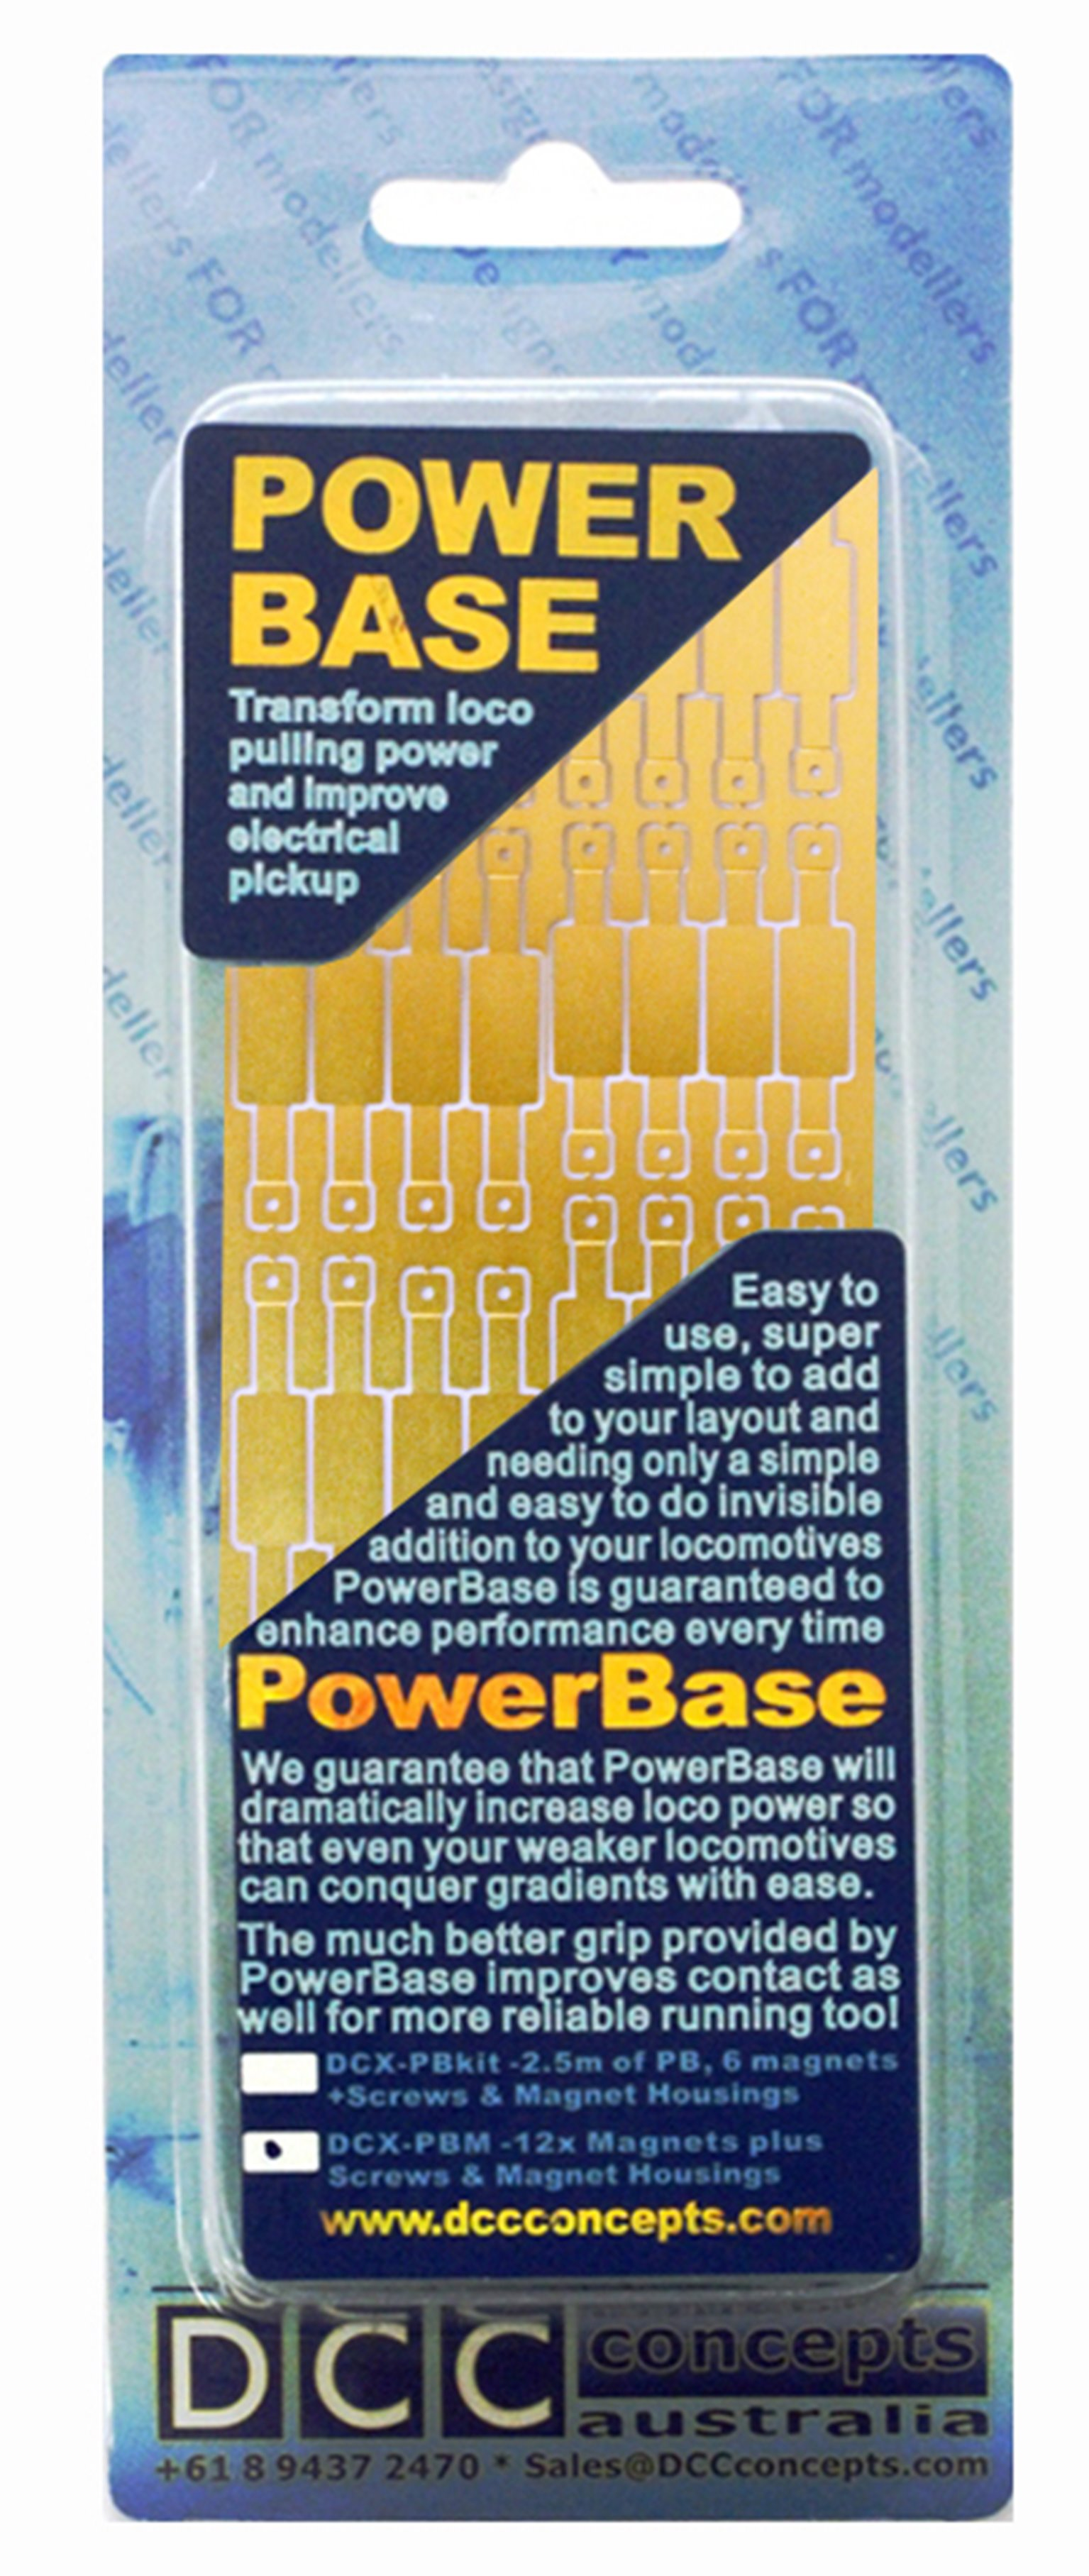 DCC Concepts Powerbase OO Magnet Mounting Etches (35pcs)